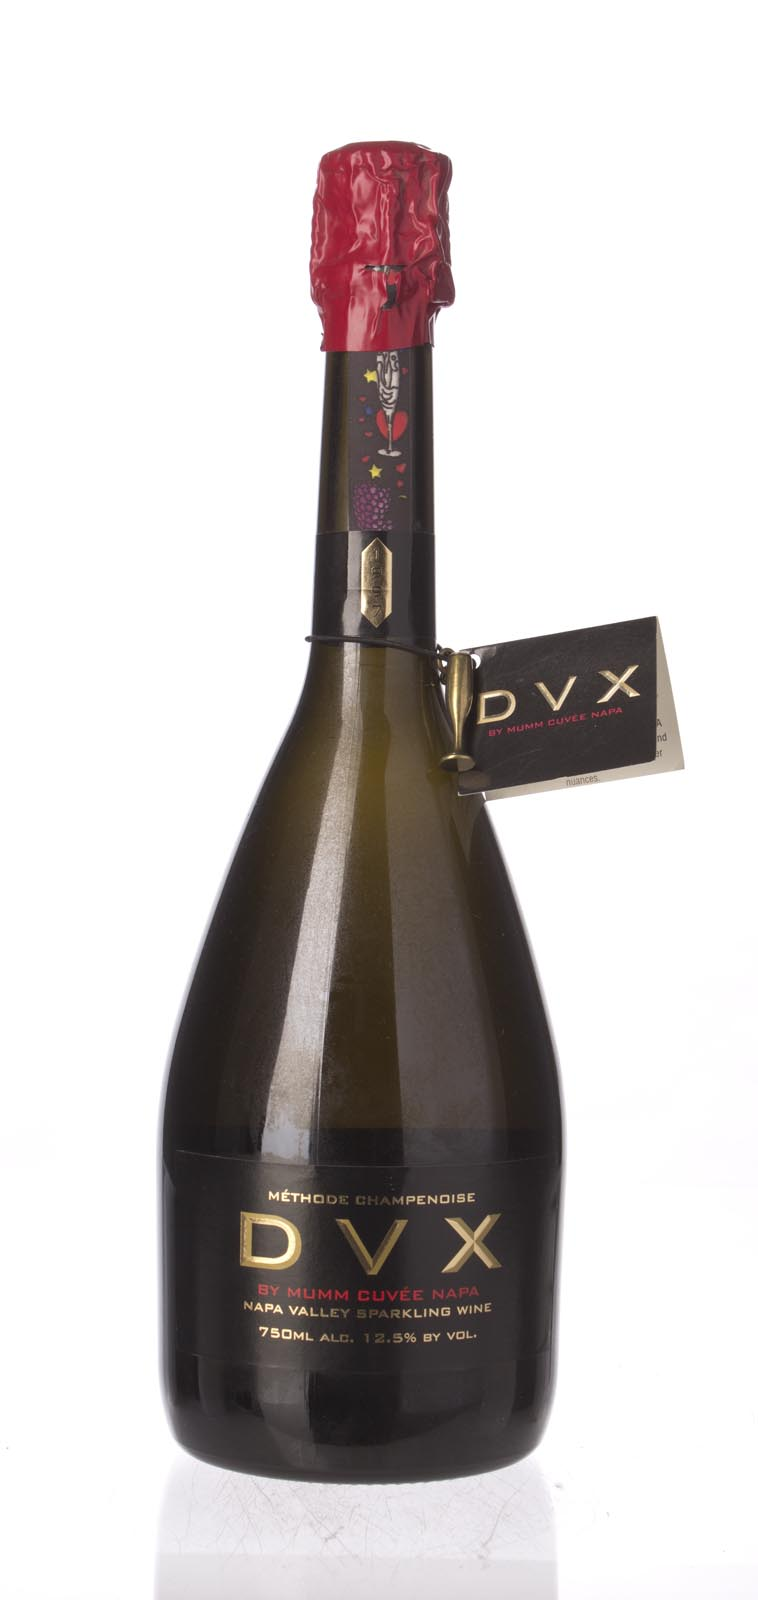 Mumm Cuvee Napa DVX 1997, 750ml () from The BPW - Merchants of rare and fine wines.